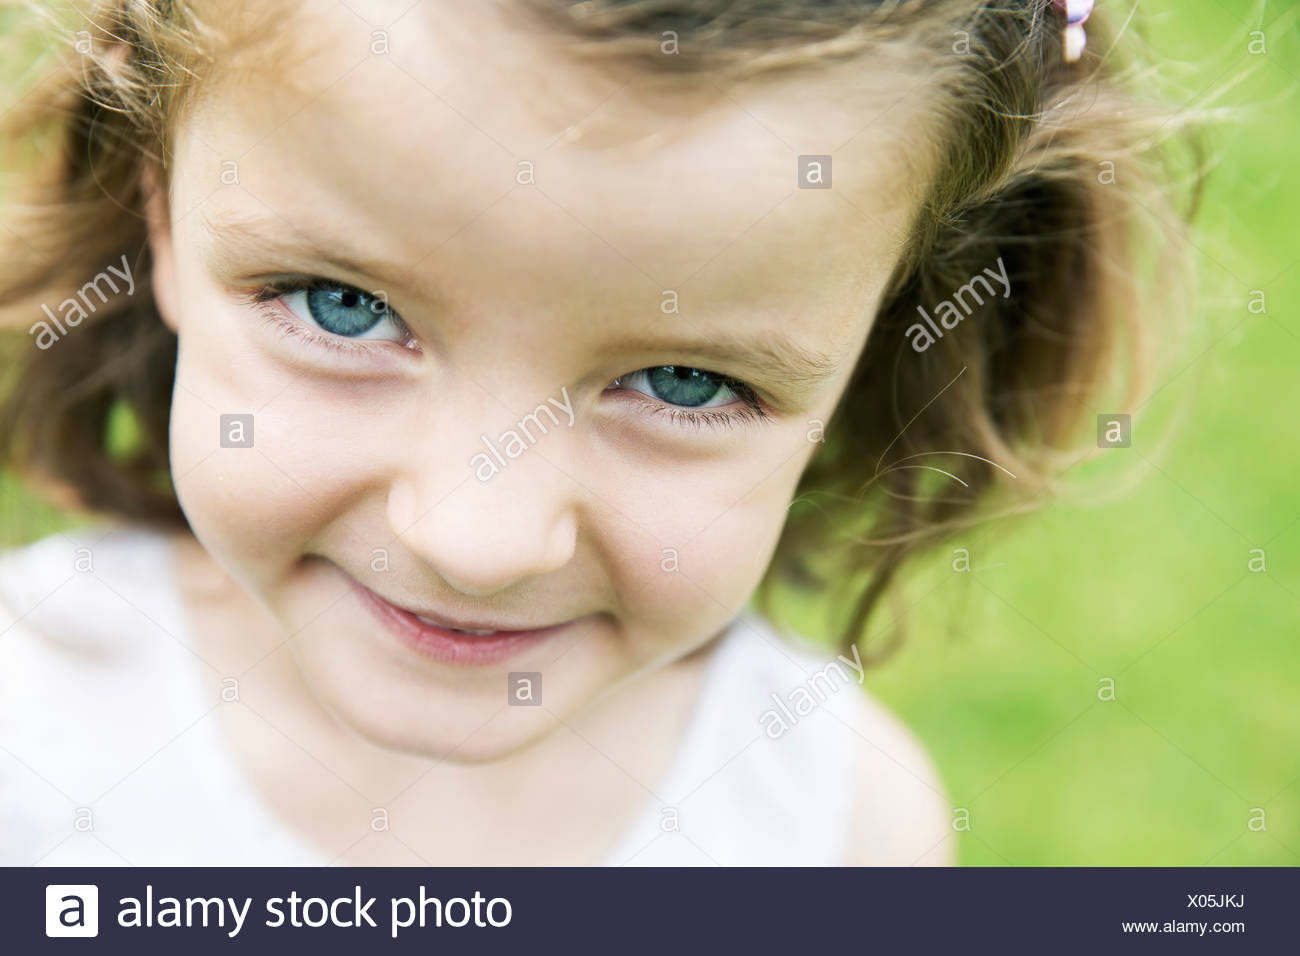 Smiling little girl with blue eyes watching at camera - Stock Image